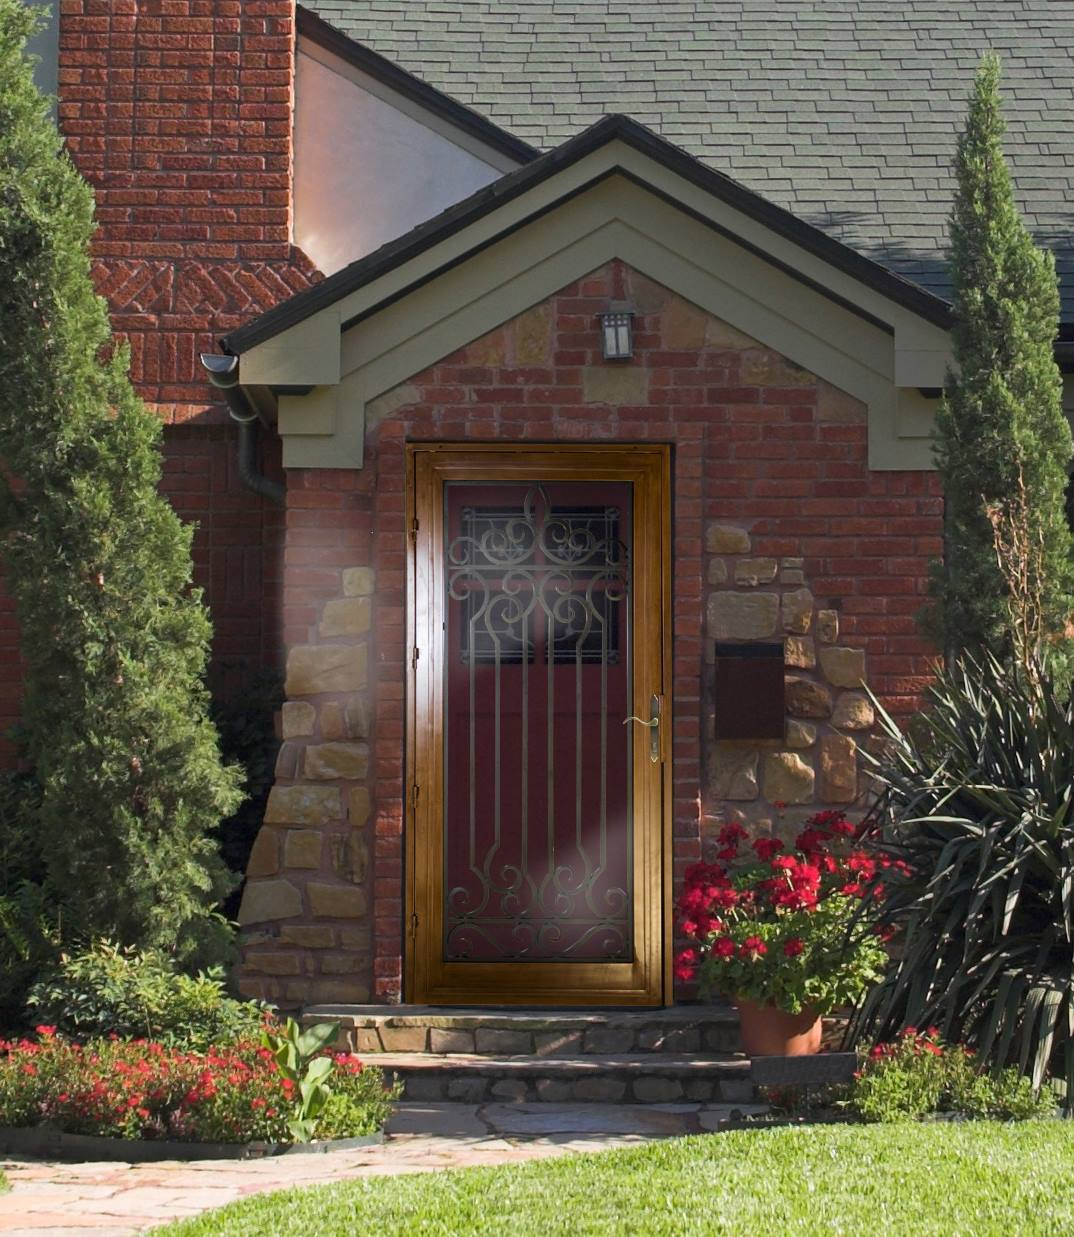 Residential entry storm and security door installation for Unique home solutions indianapolis